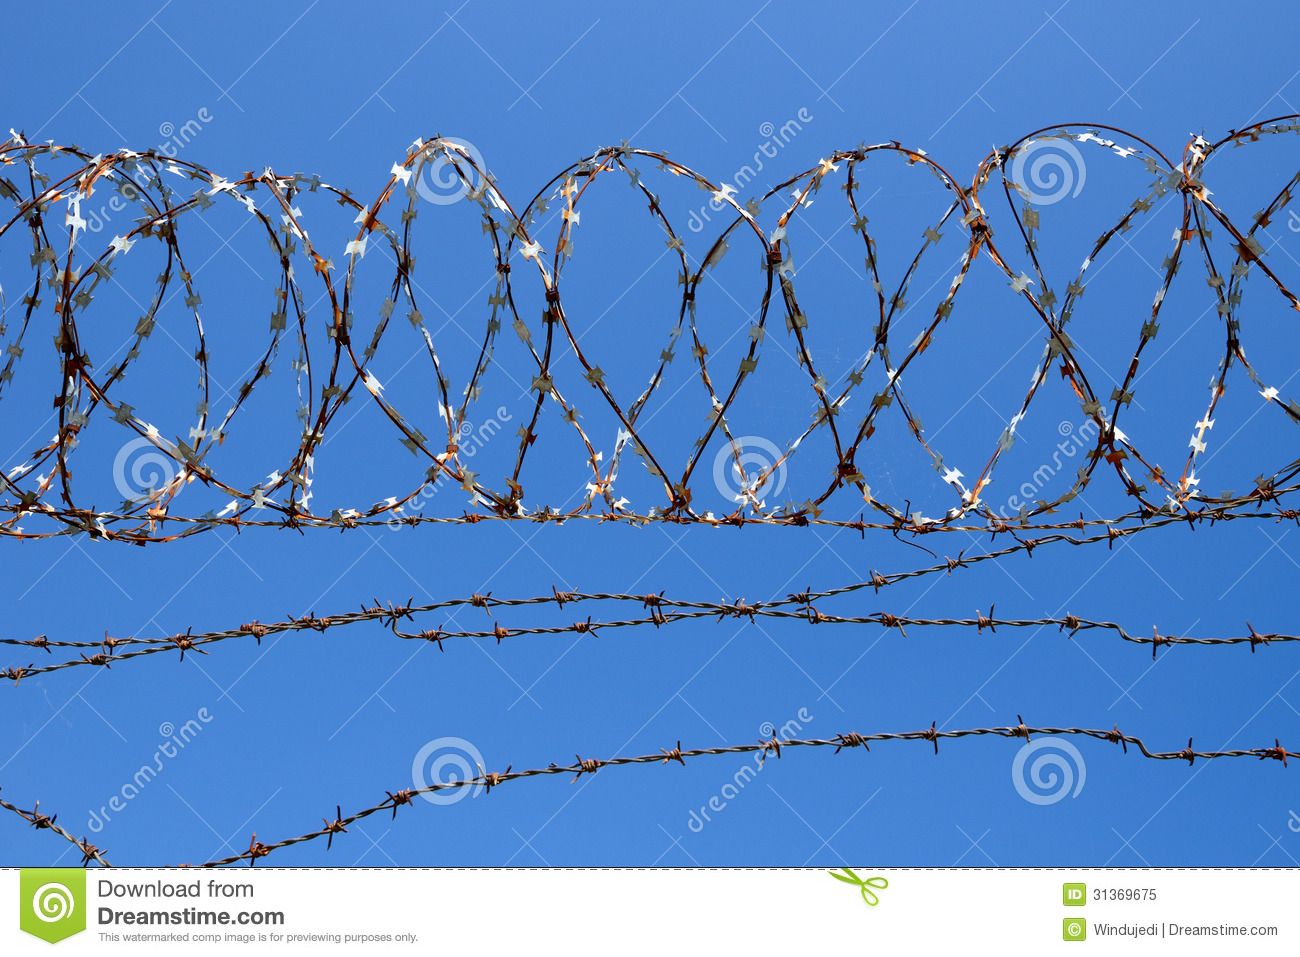 Barbed wire royalty free stock photo image